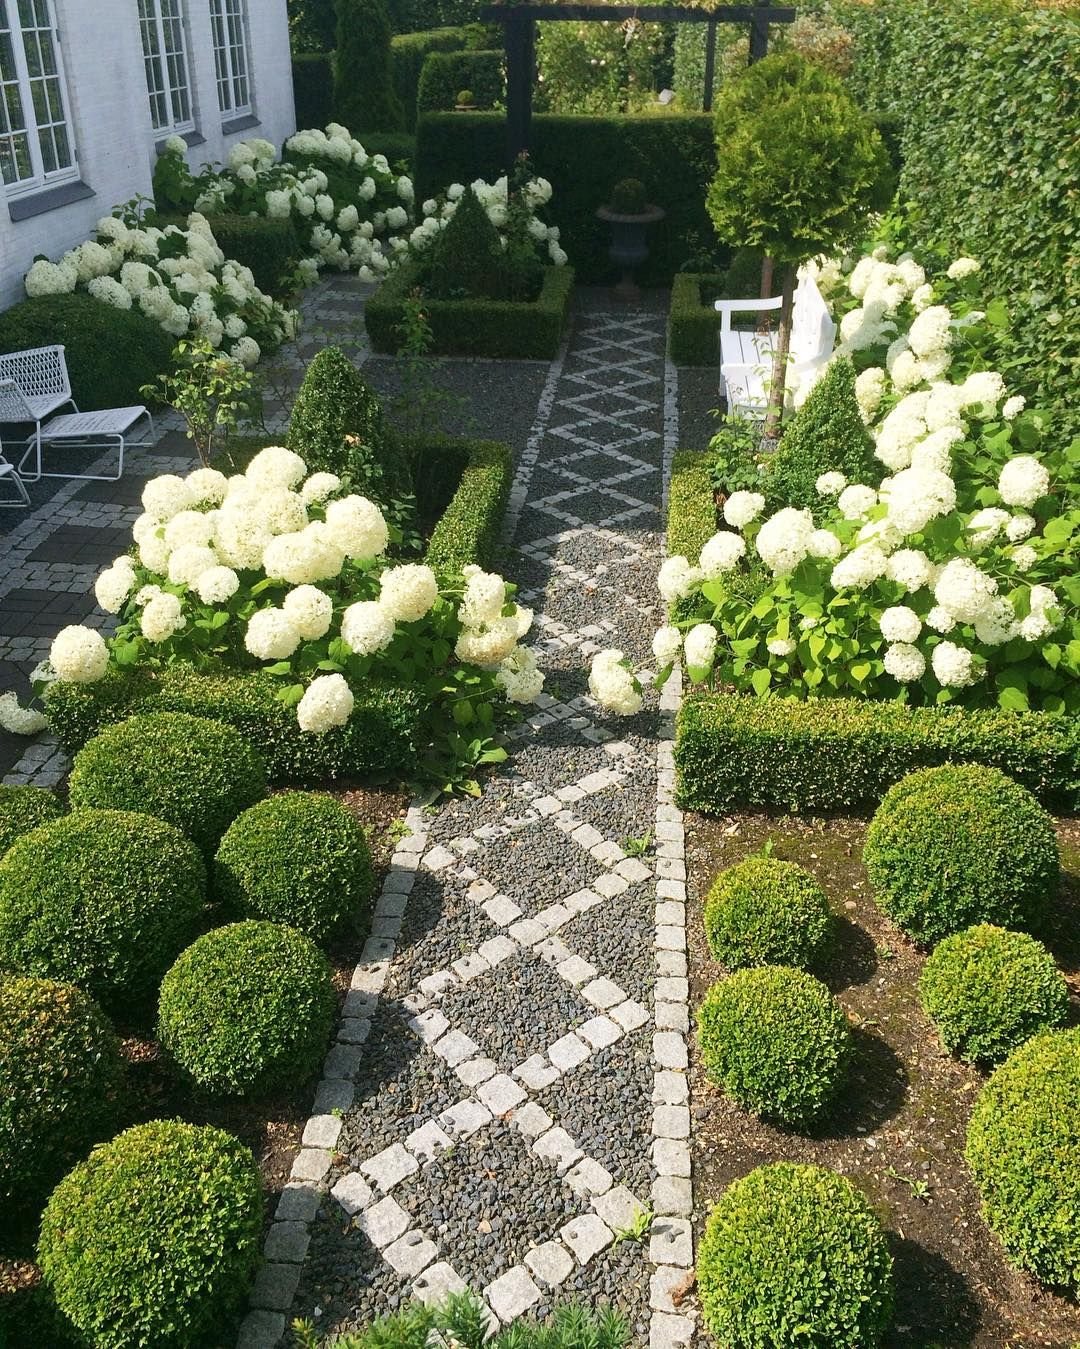 Marvelous Love The Stone And Gravel Pathway Through The Boxwood And Hydrangea Garden.  White And Green Garden And Landscaping Design Is ABSOLUTELY STUNNING!